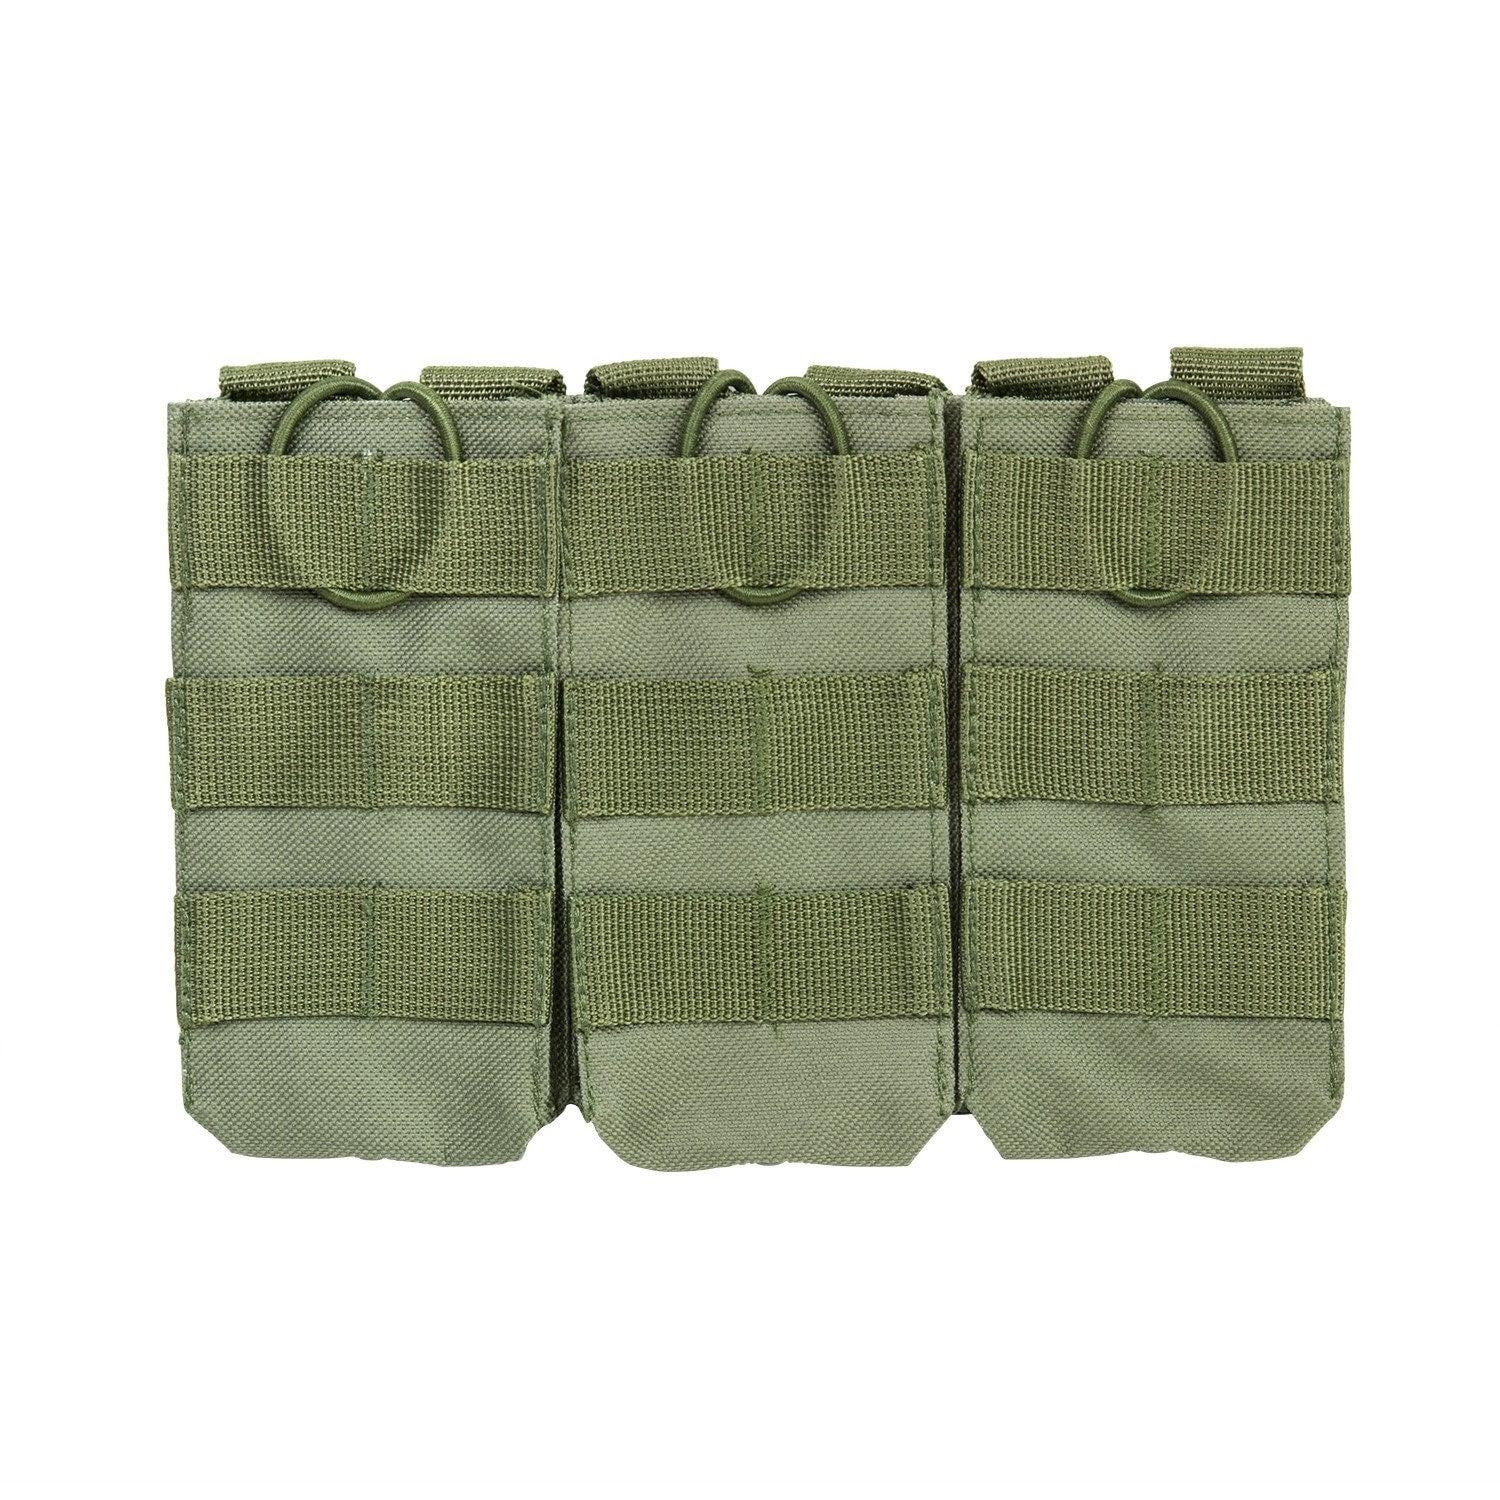 Ar Triple Magazine Pouch - Green - Molle Pouches And Accessories - Vism - Colonel Mustard